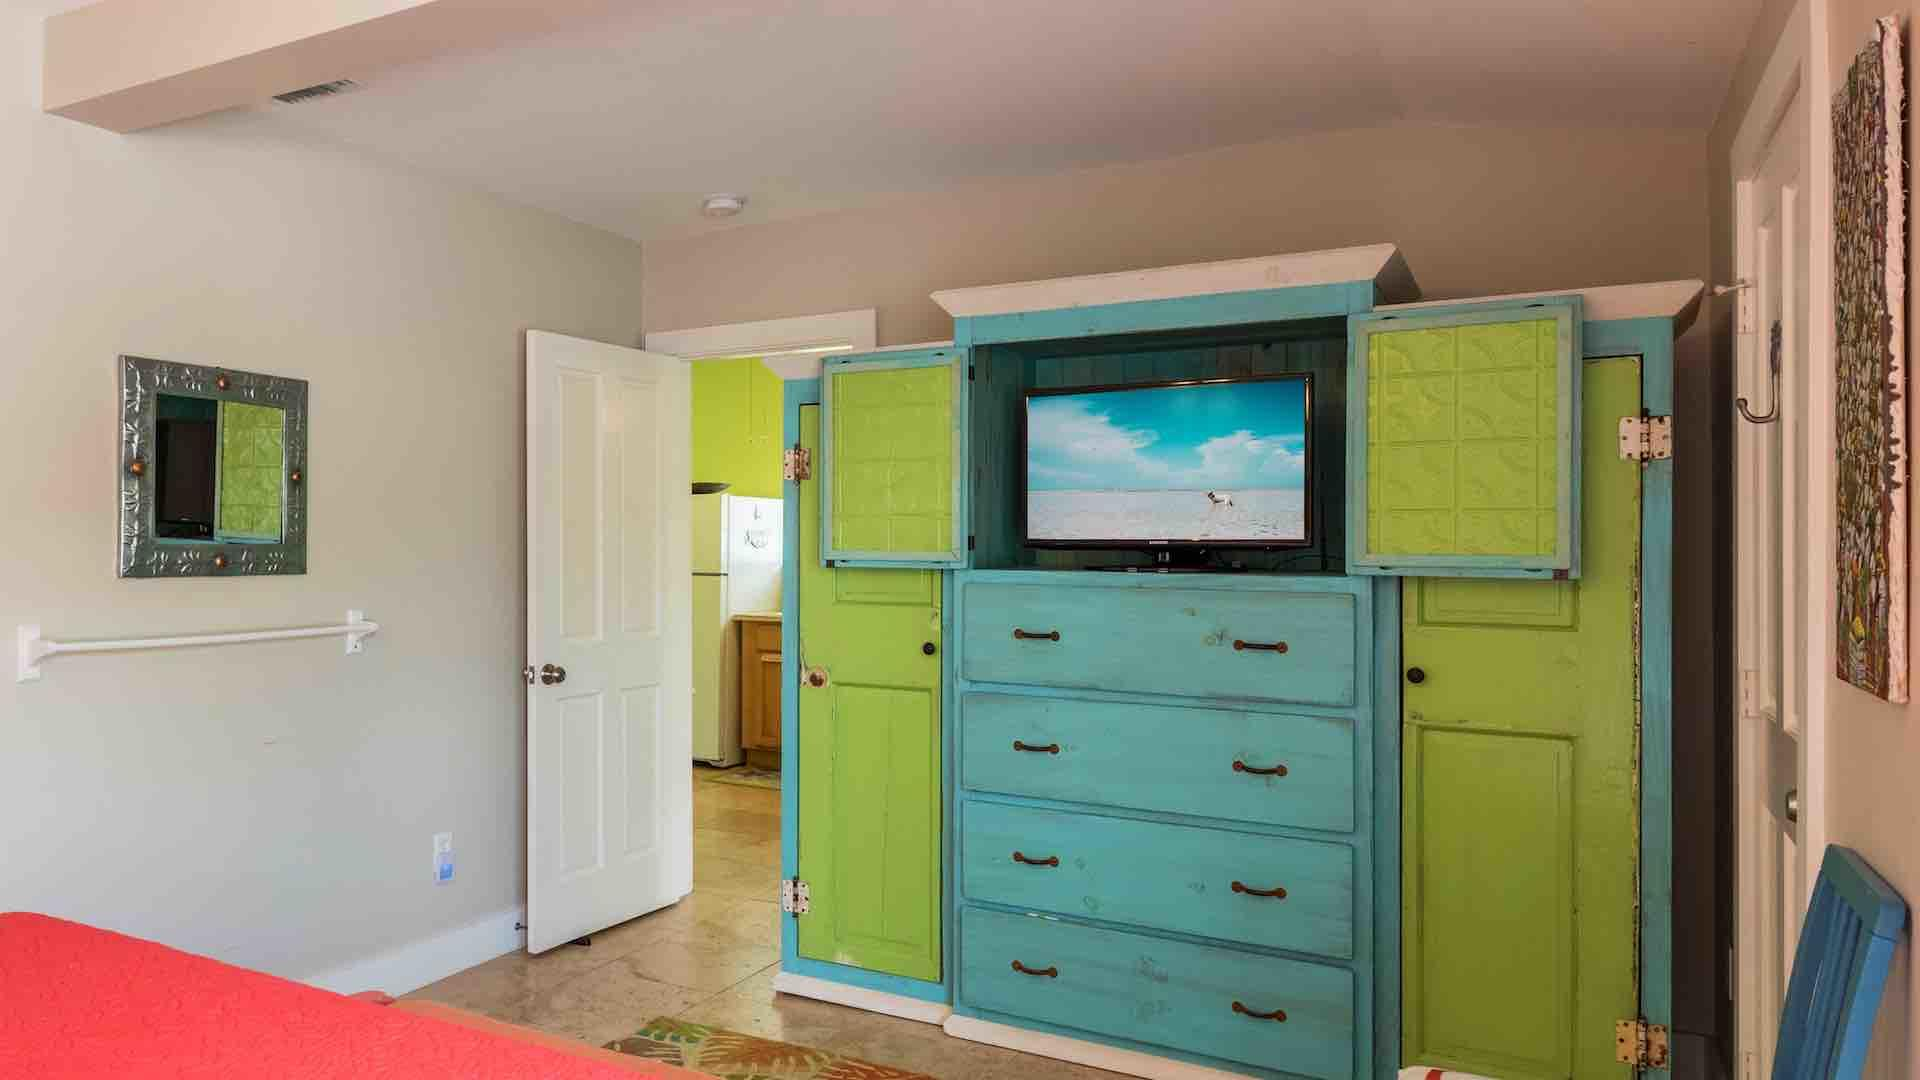 The first bedroom has a flat screen TV and plenty of dresser space...